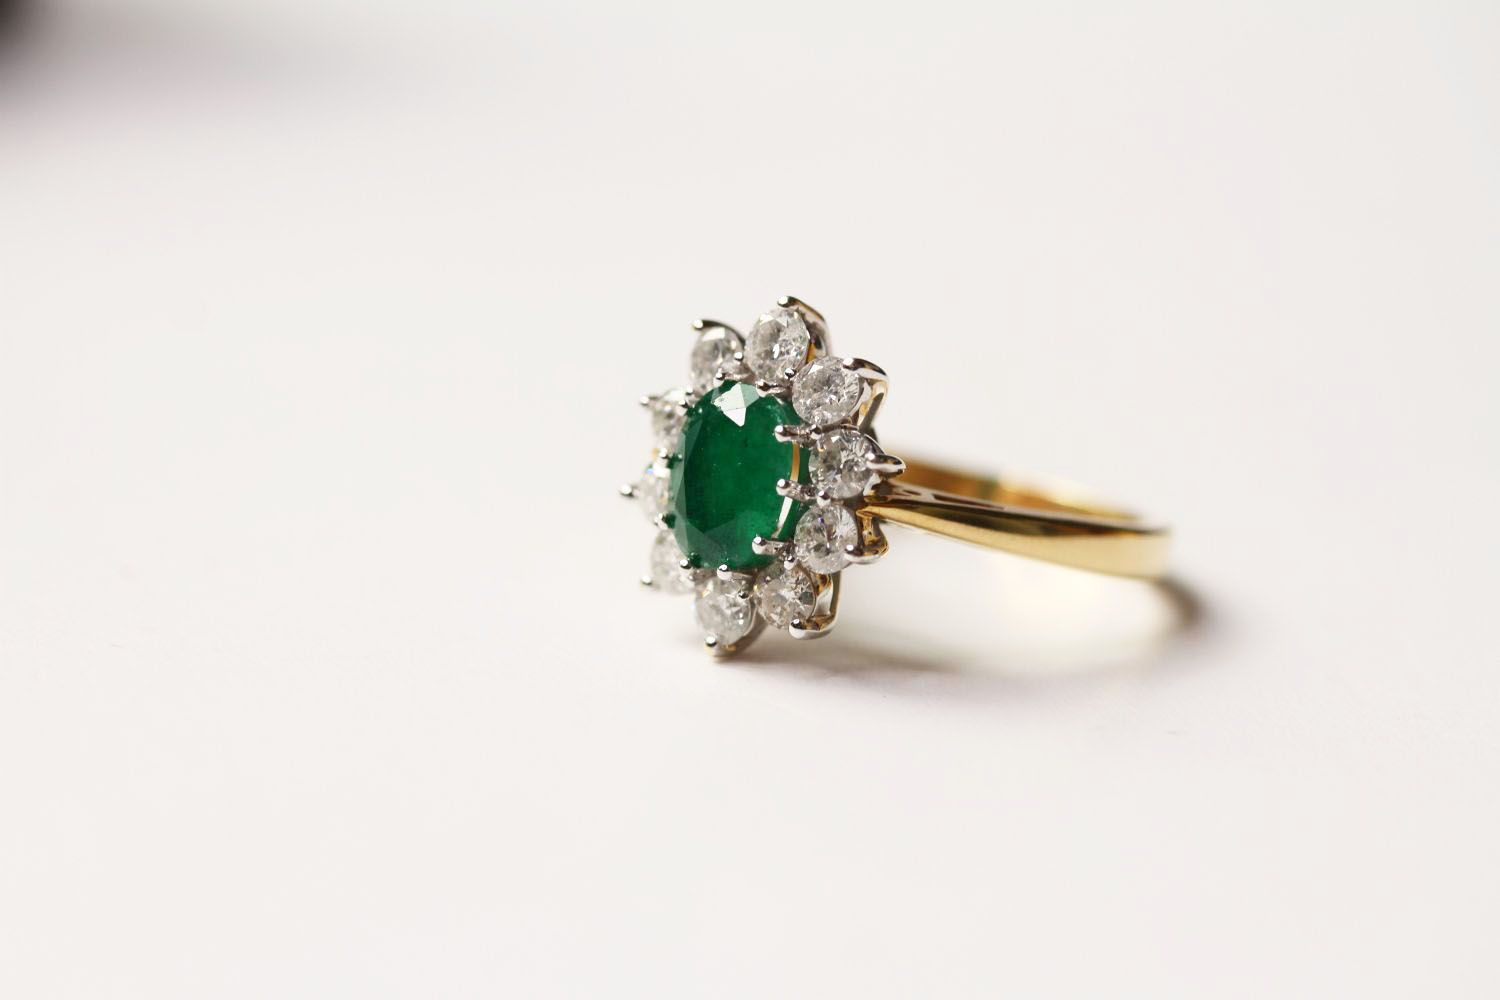 Emerald & Diamond Ring, set with an oval cut emerald, surrounded by 10 round brilliant cut diamonds,